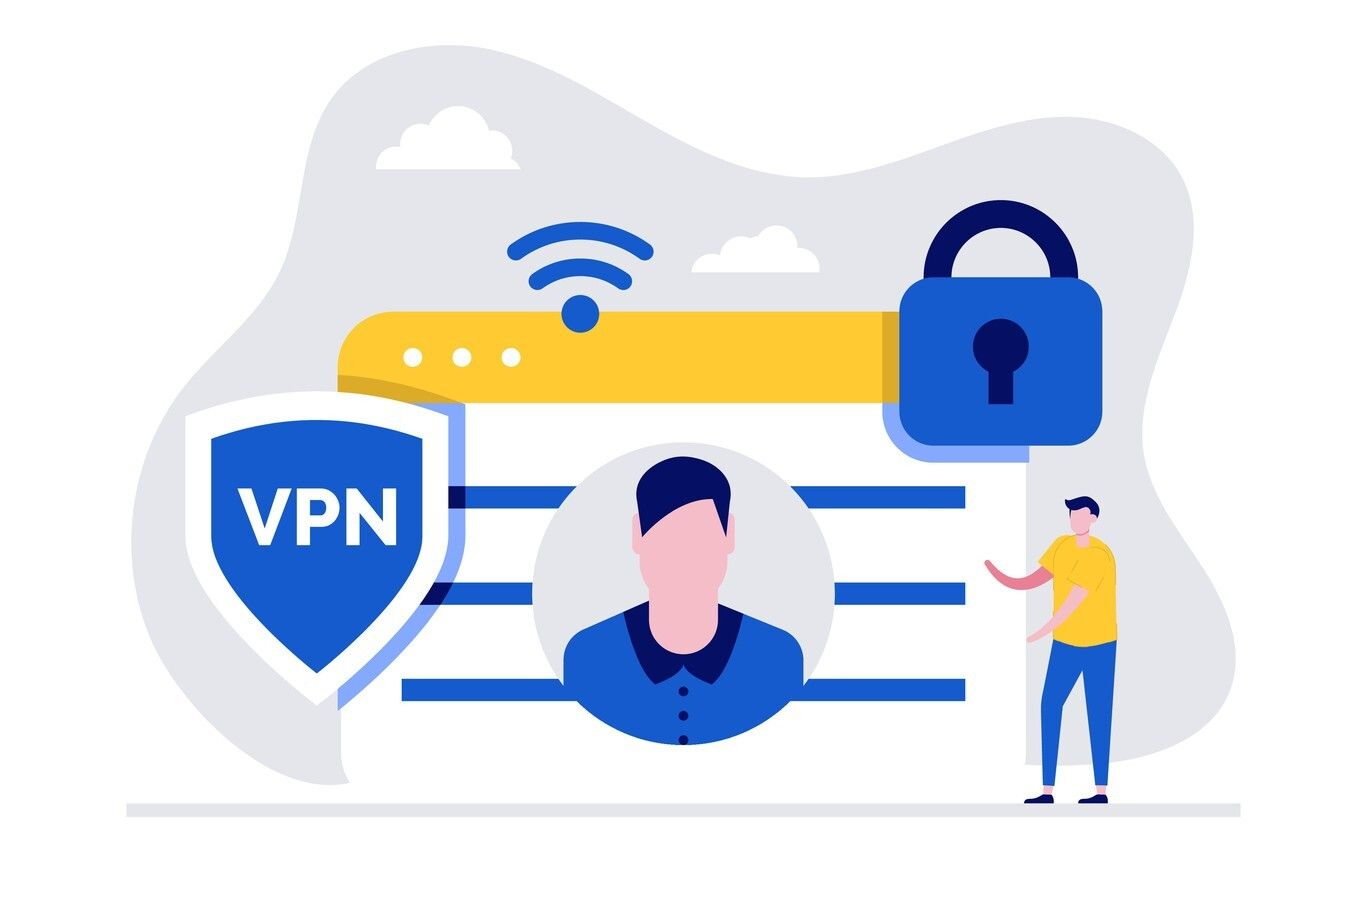 VPN Location Changer: How To Change Your Location And IP With A VPN